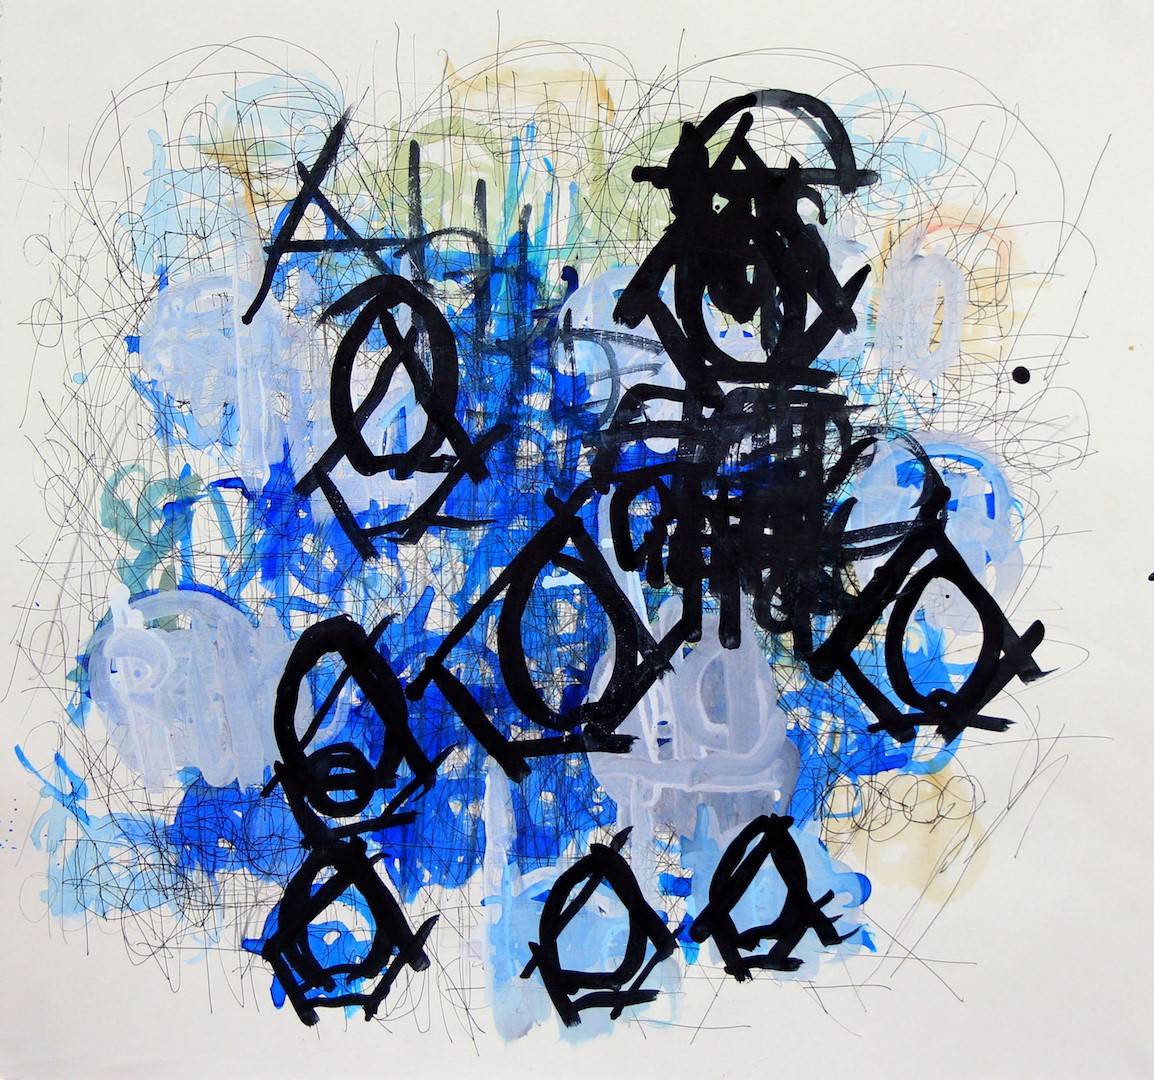 Dan Miller.  Untitled , 2012. Ink and acrylic on paper; 21 x 22.25 inches. Courtesy of the artist and Creative Growth Art Center, Oakland. © Creative Growth Art Center.